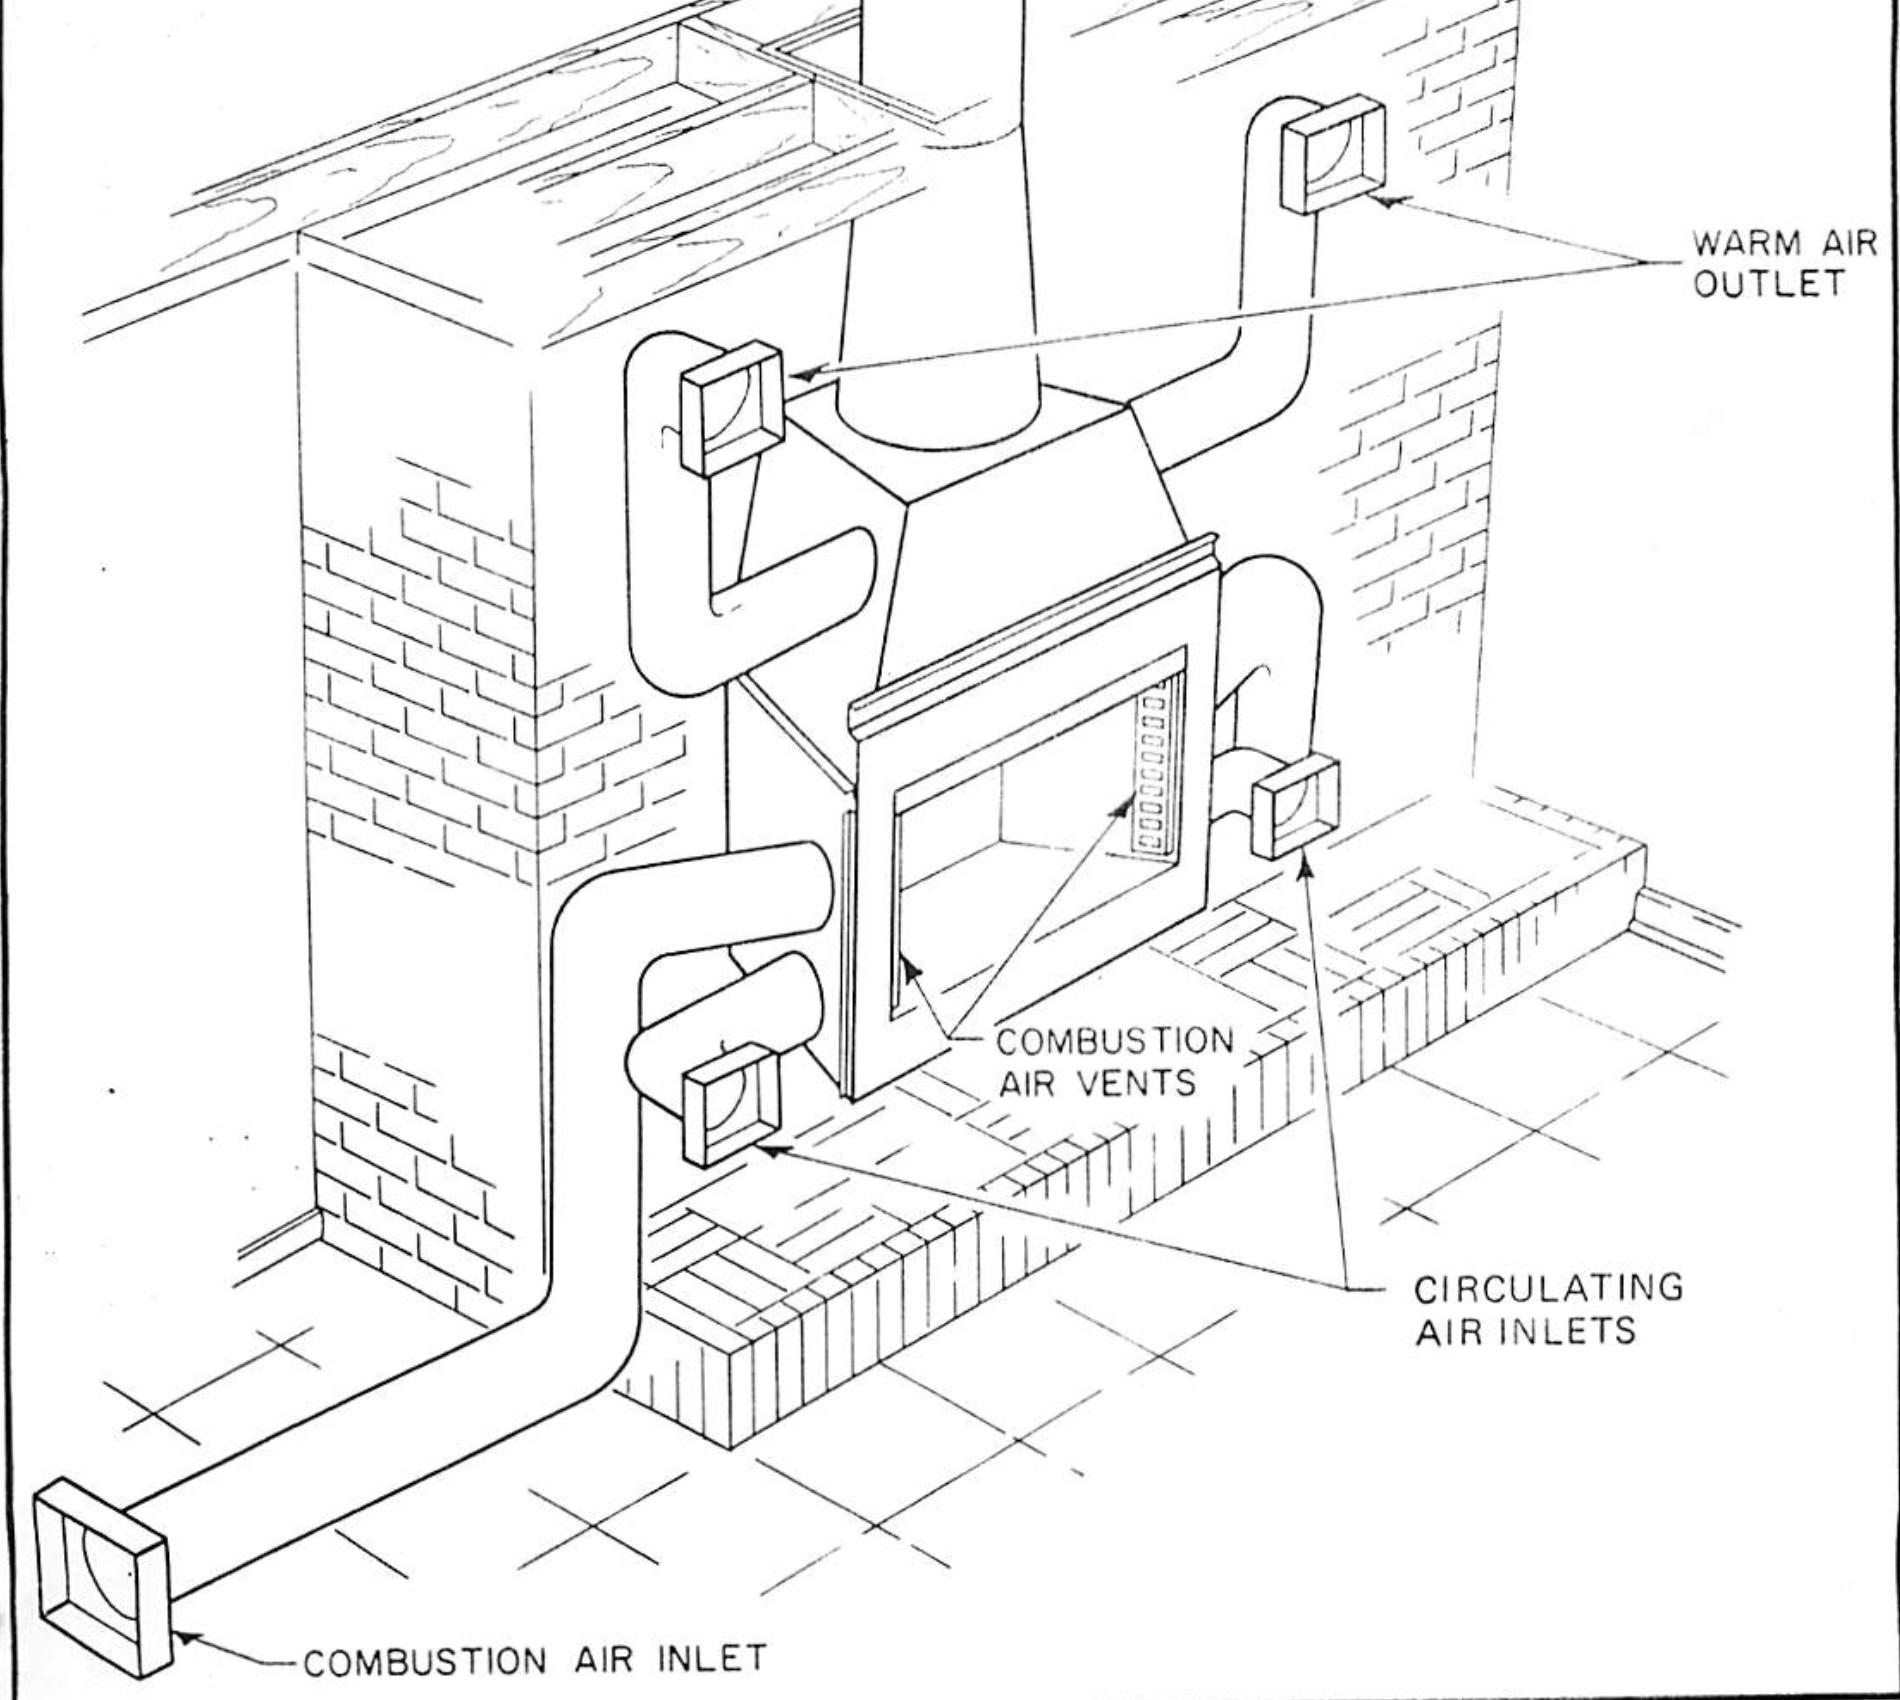 Who To Call For Fireplace Ducting Safety Check And Repair